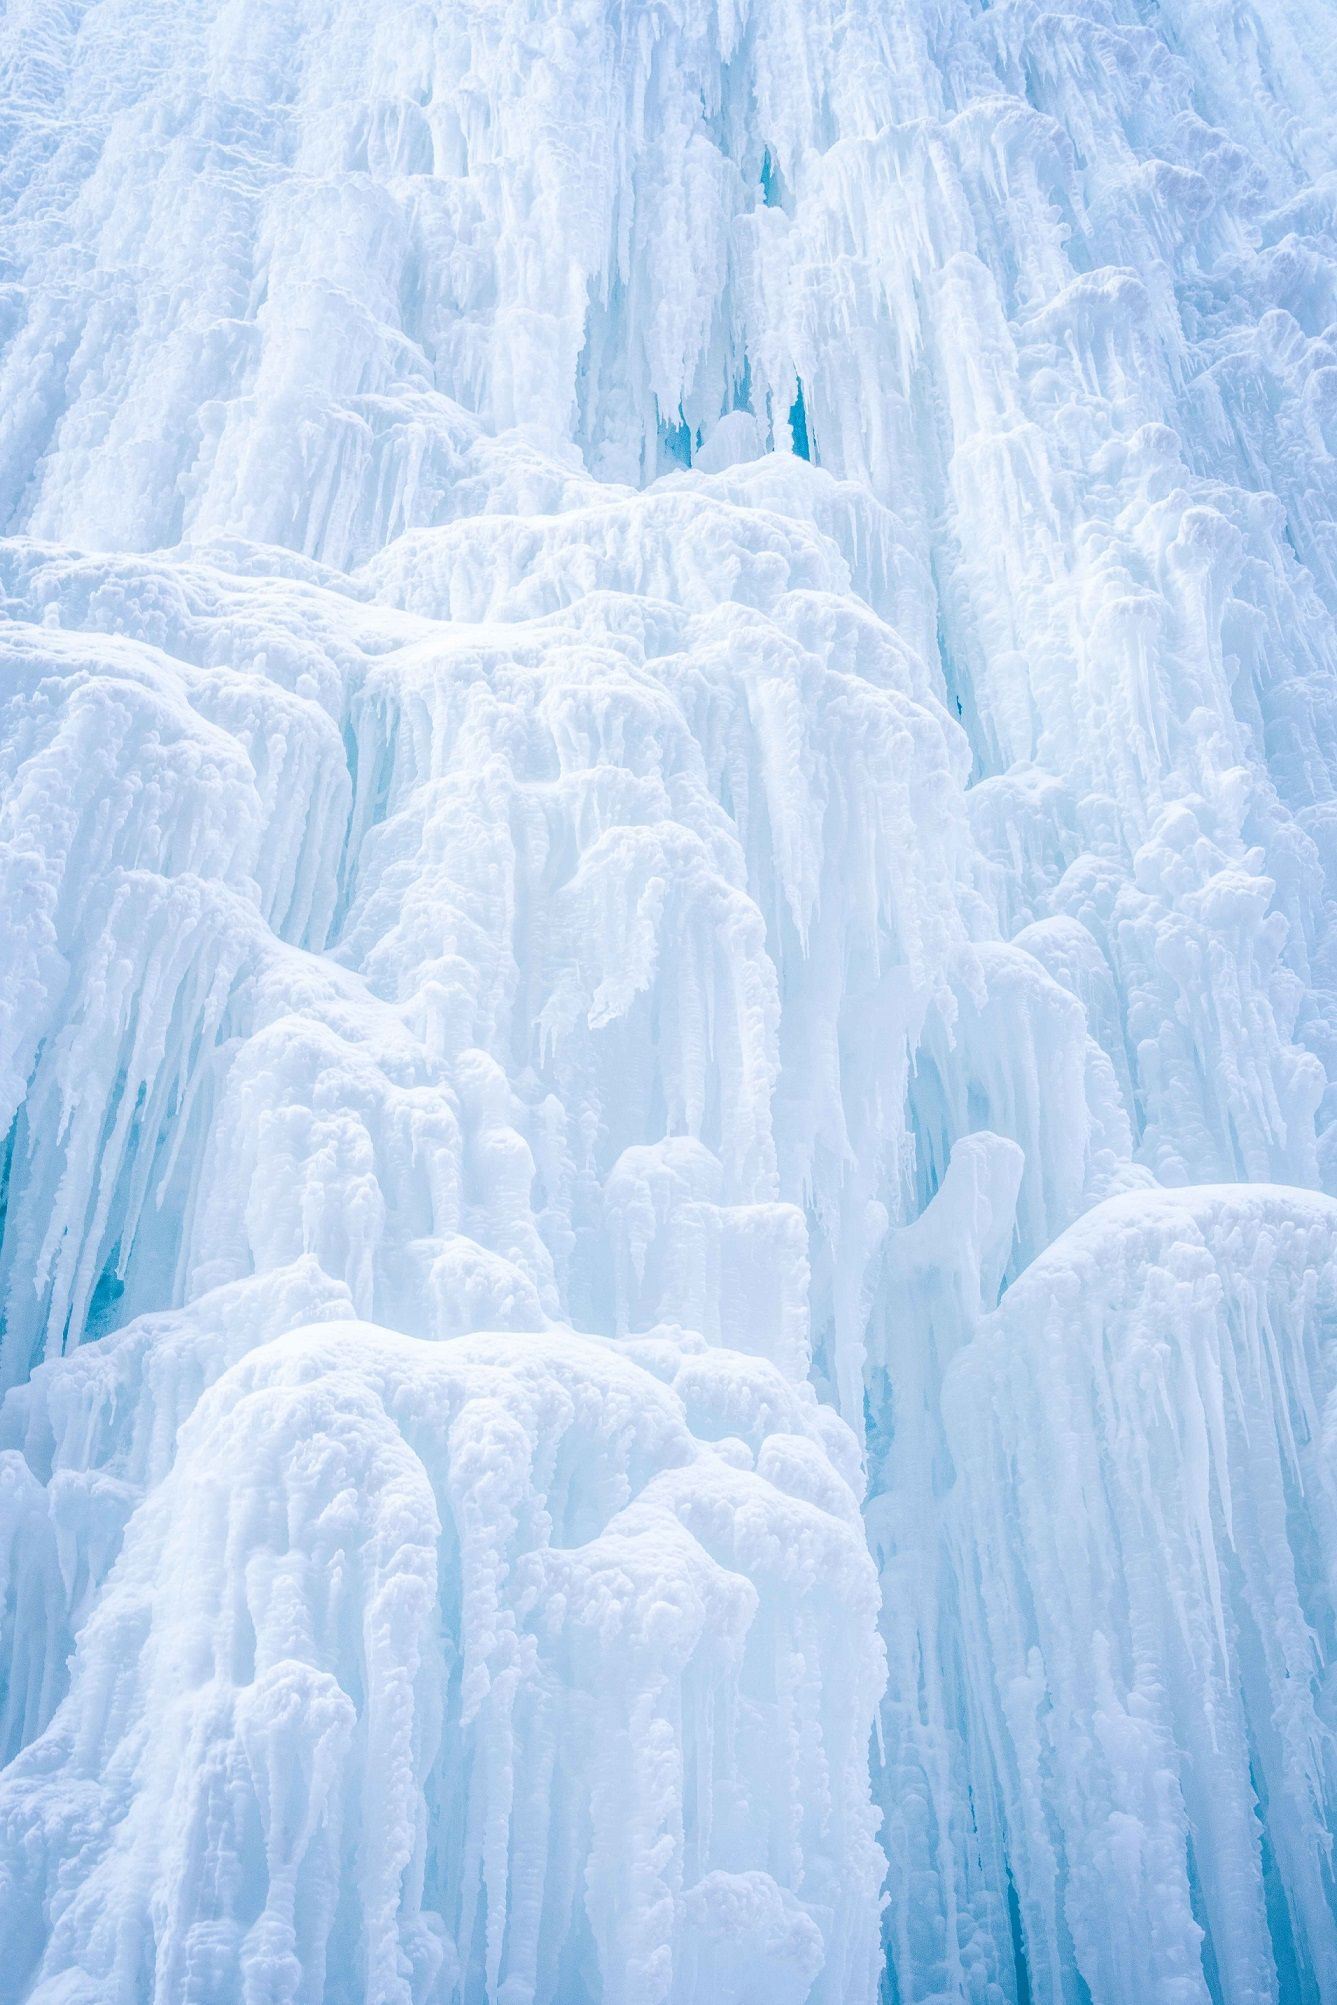 Frozen Waterfall,Luca Marziale,Photographie